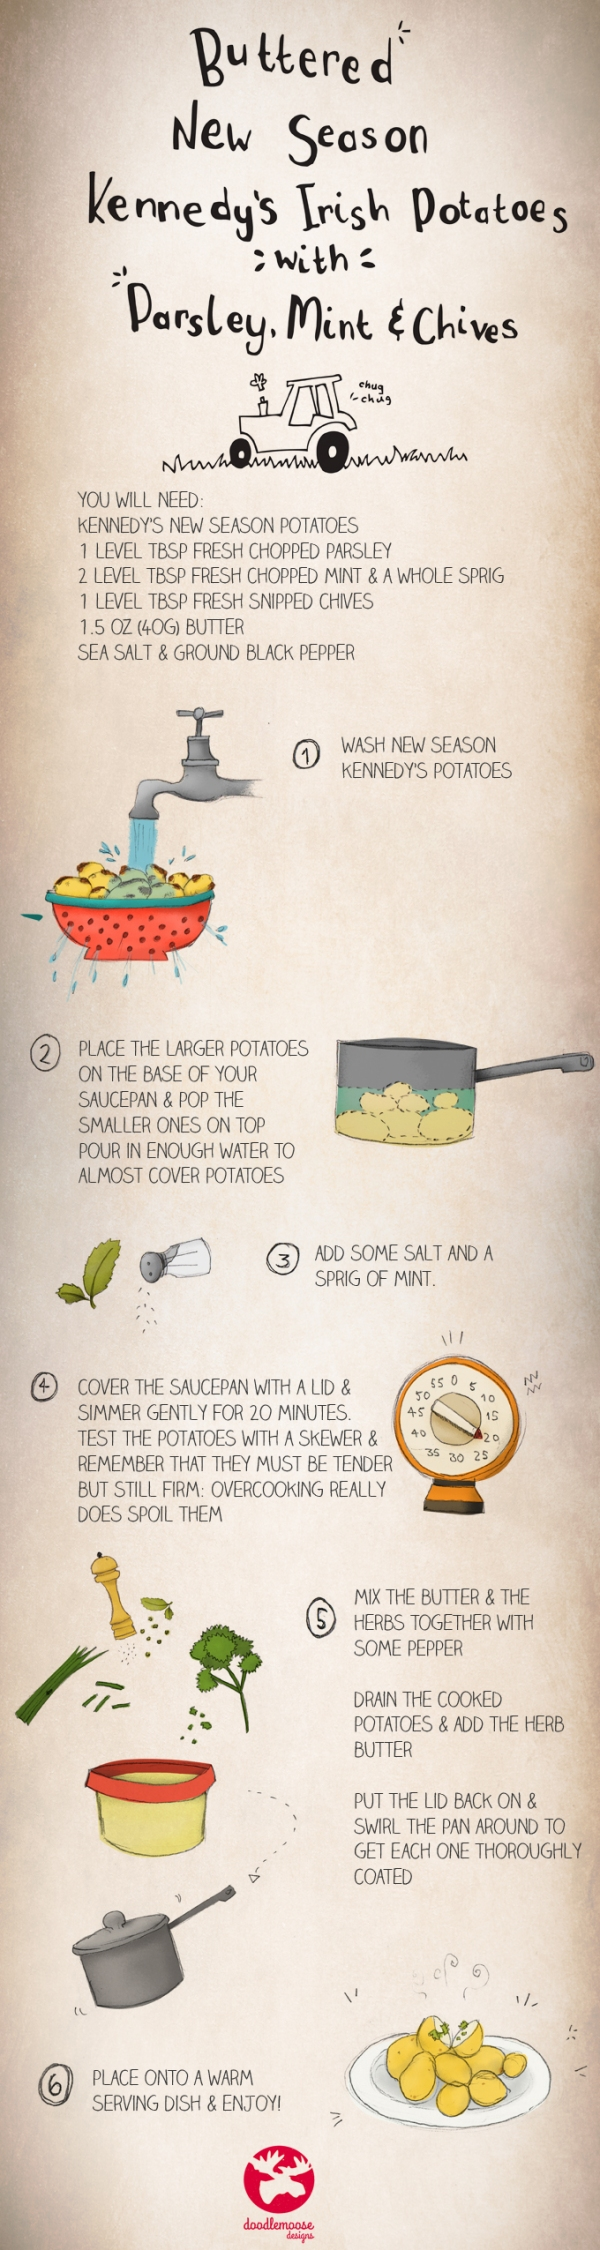 Illustrated recipe for new season kennedy's potatoes